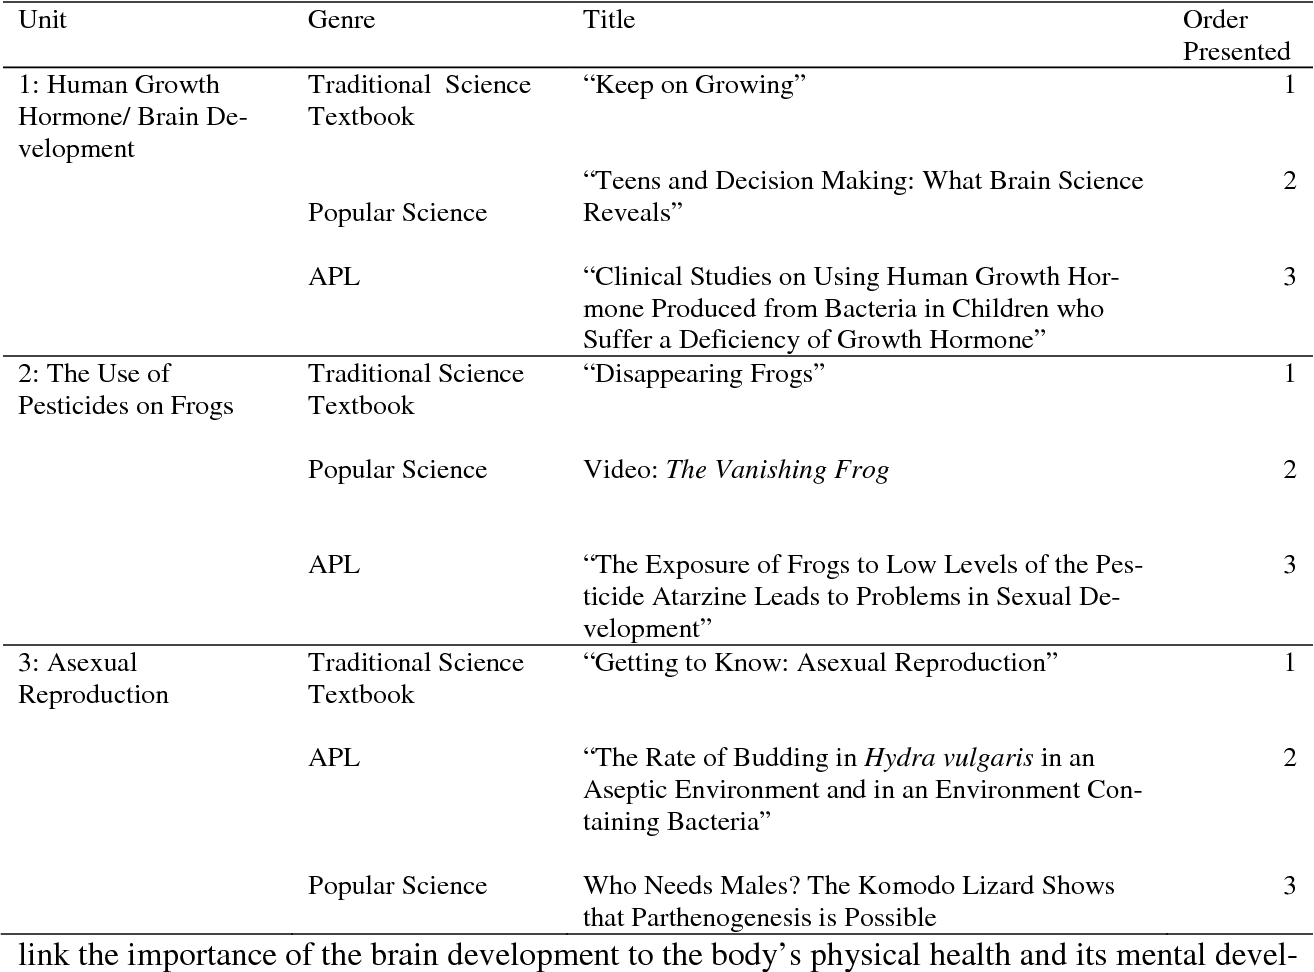 Table 6 from A Teacher's Journey: Making Sense of How